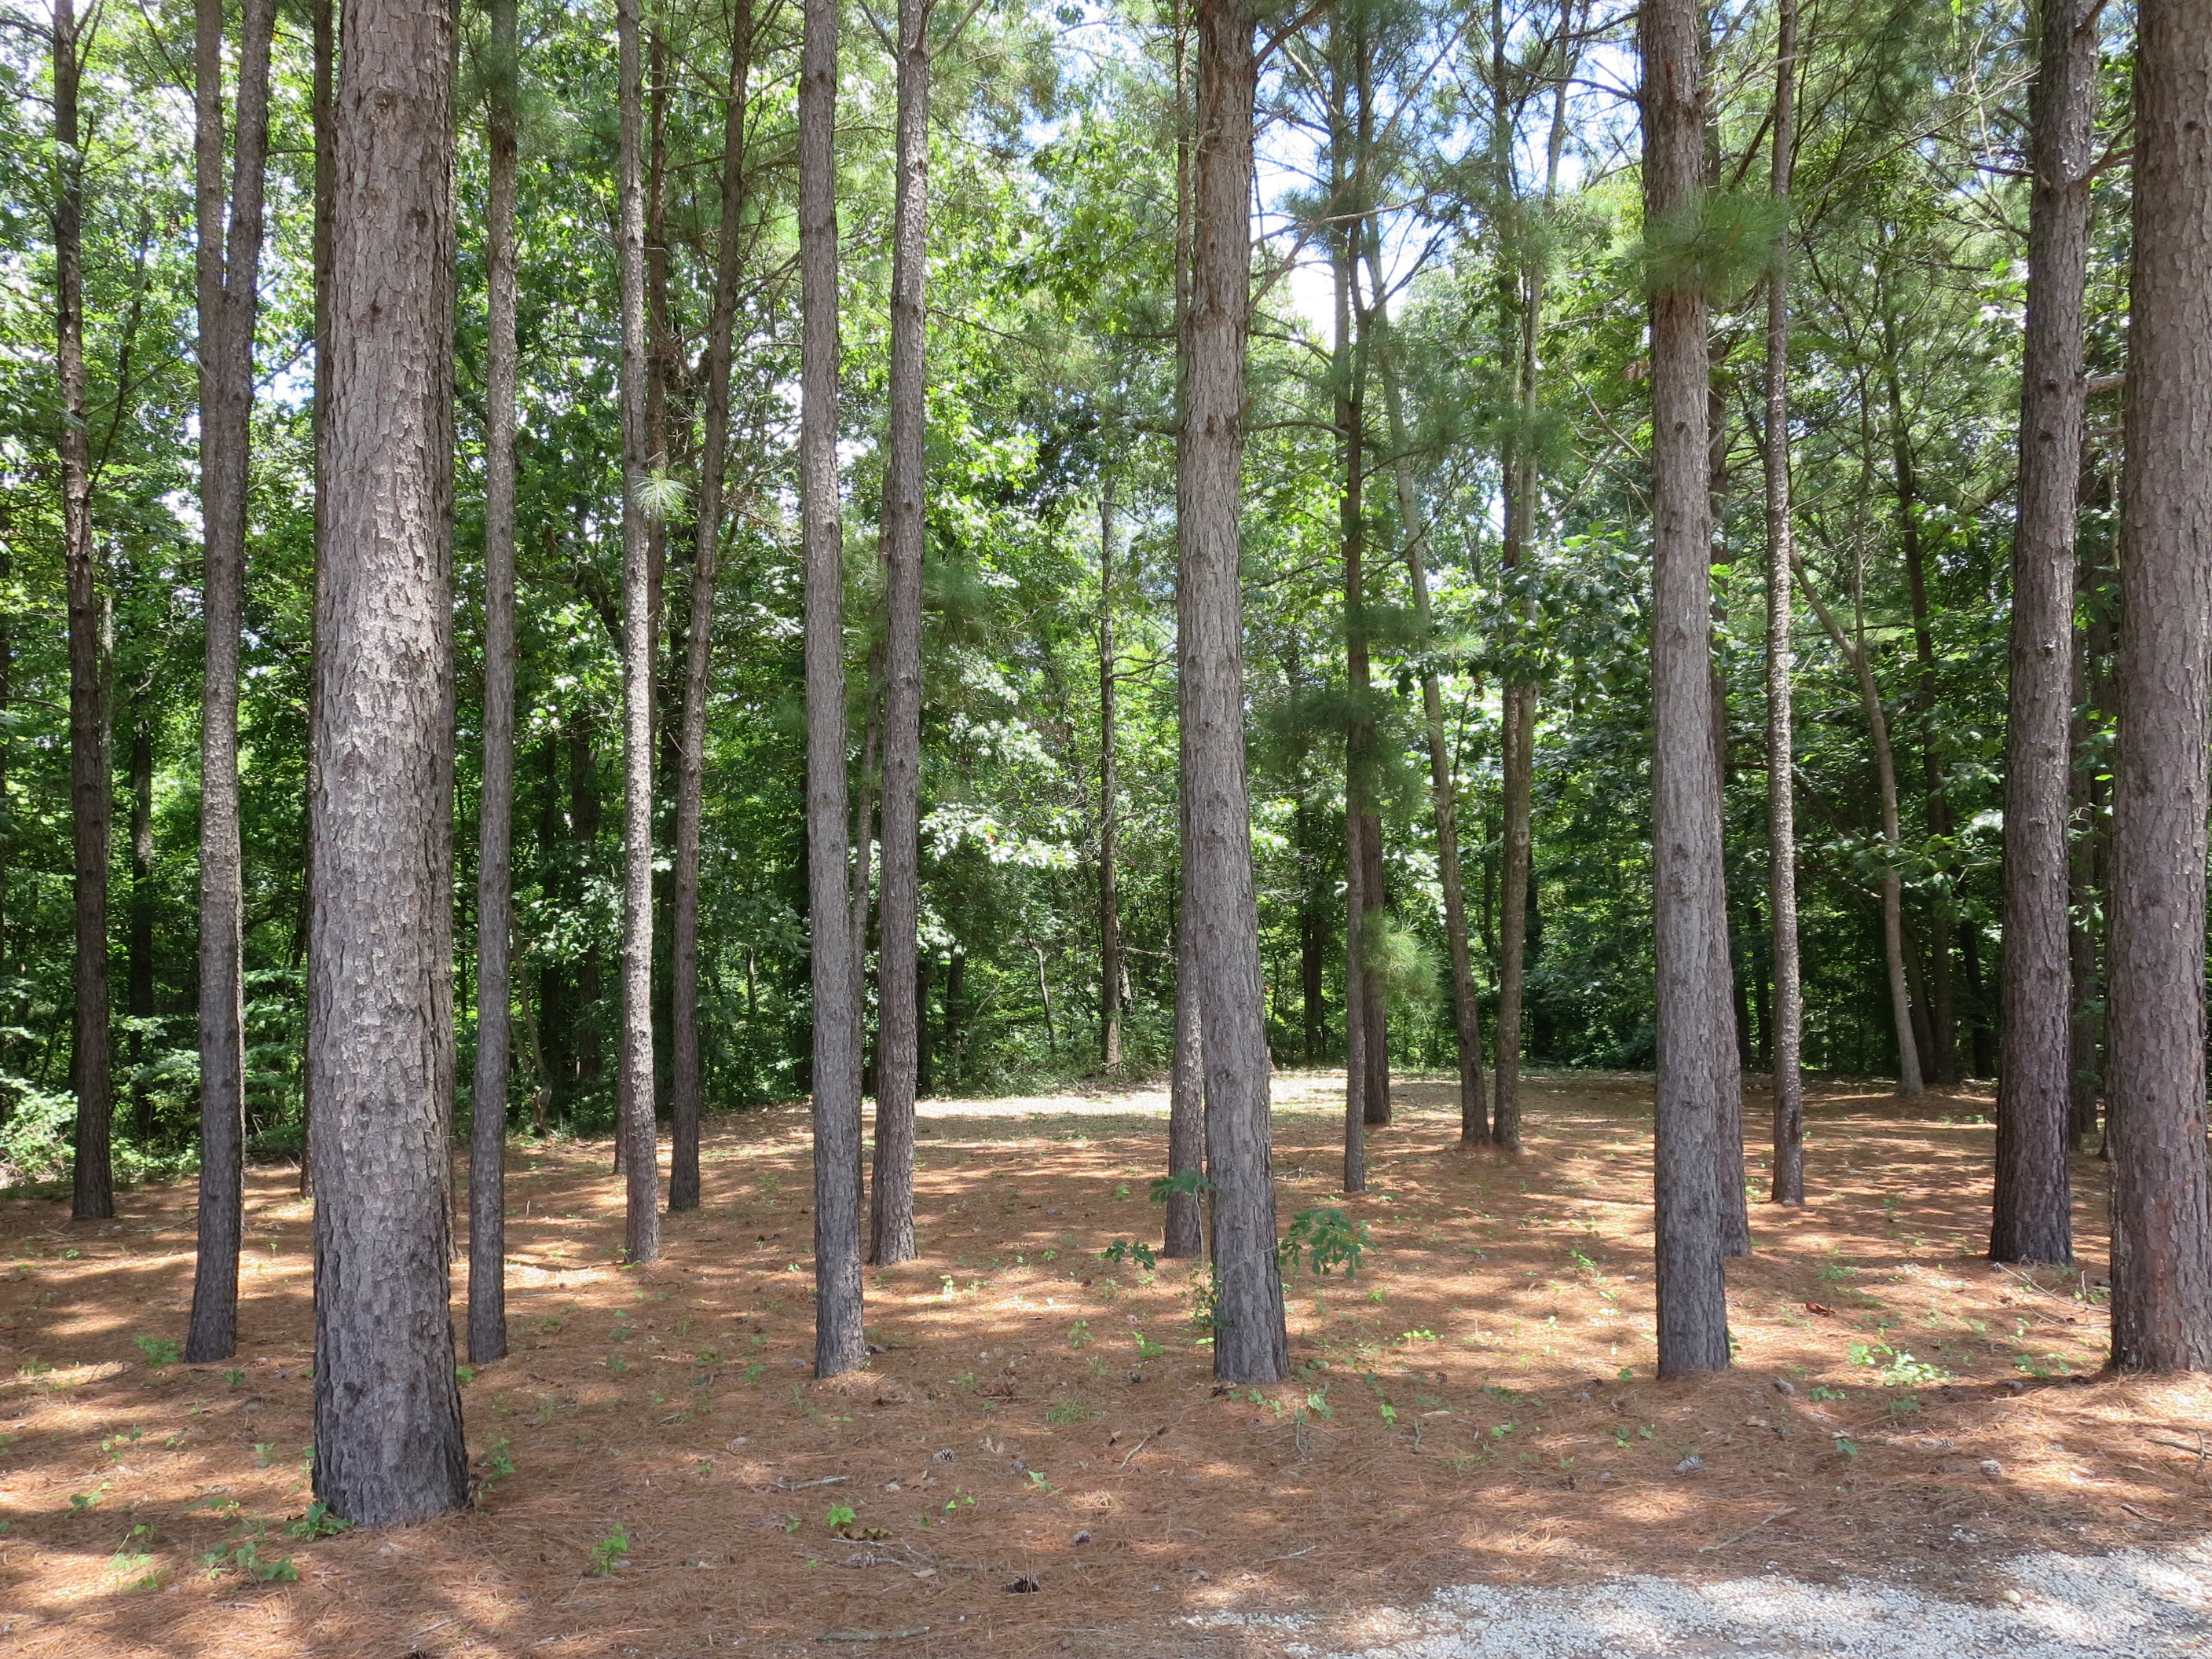 Pine trees in the Tent camping area